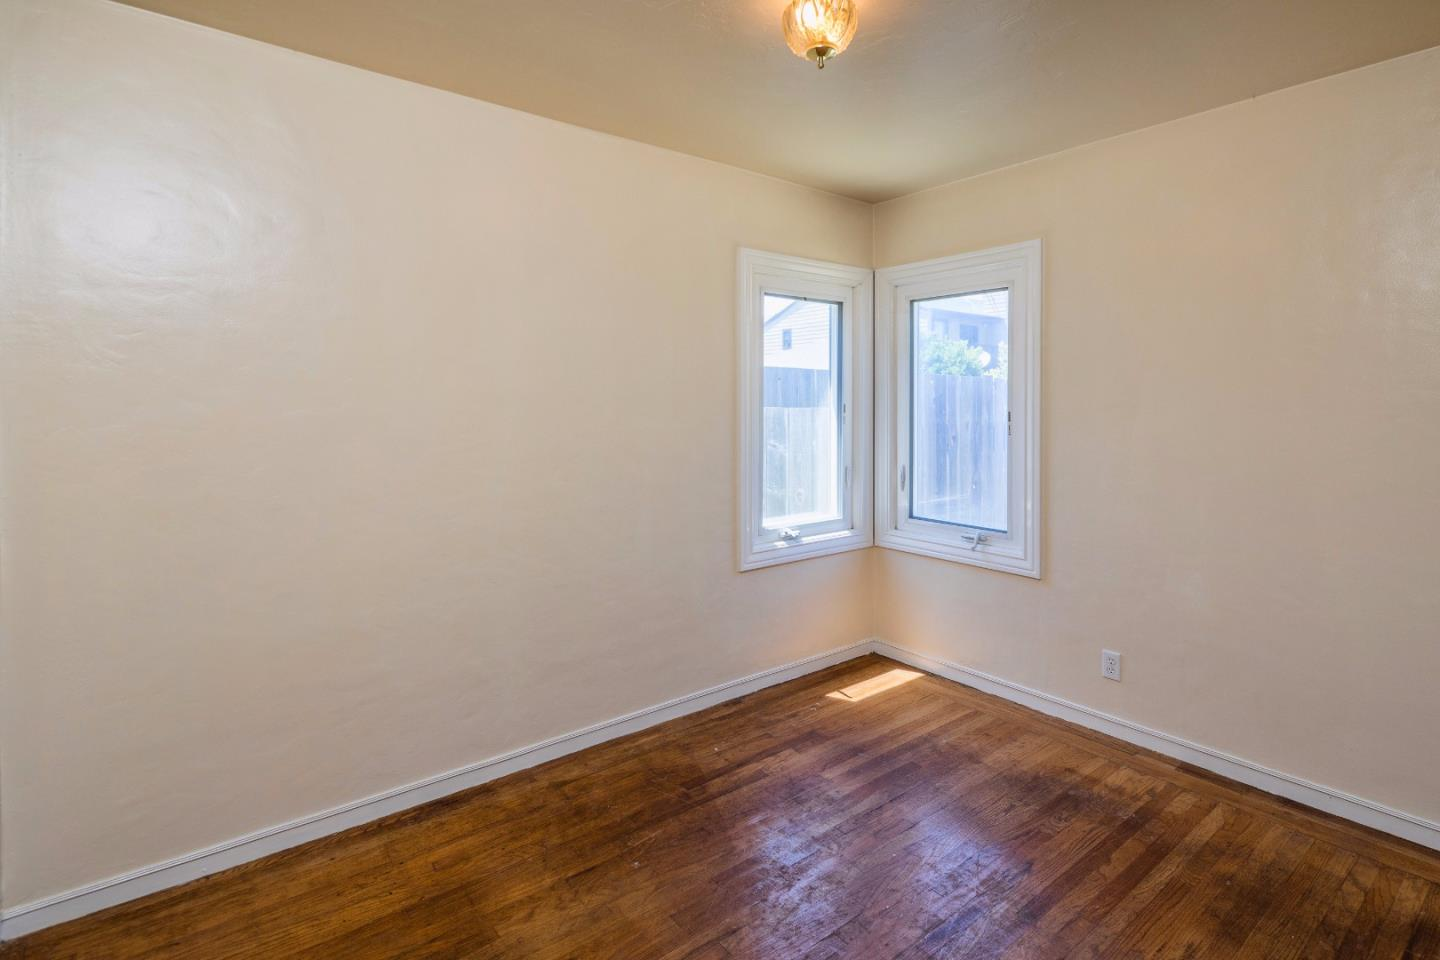 Additional photo for property listing at 122 Euclid Avenue  San Bruno, California 94066 United States